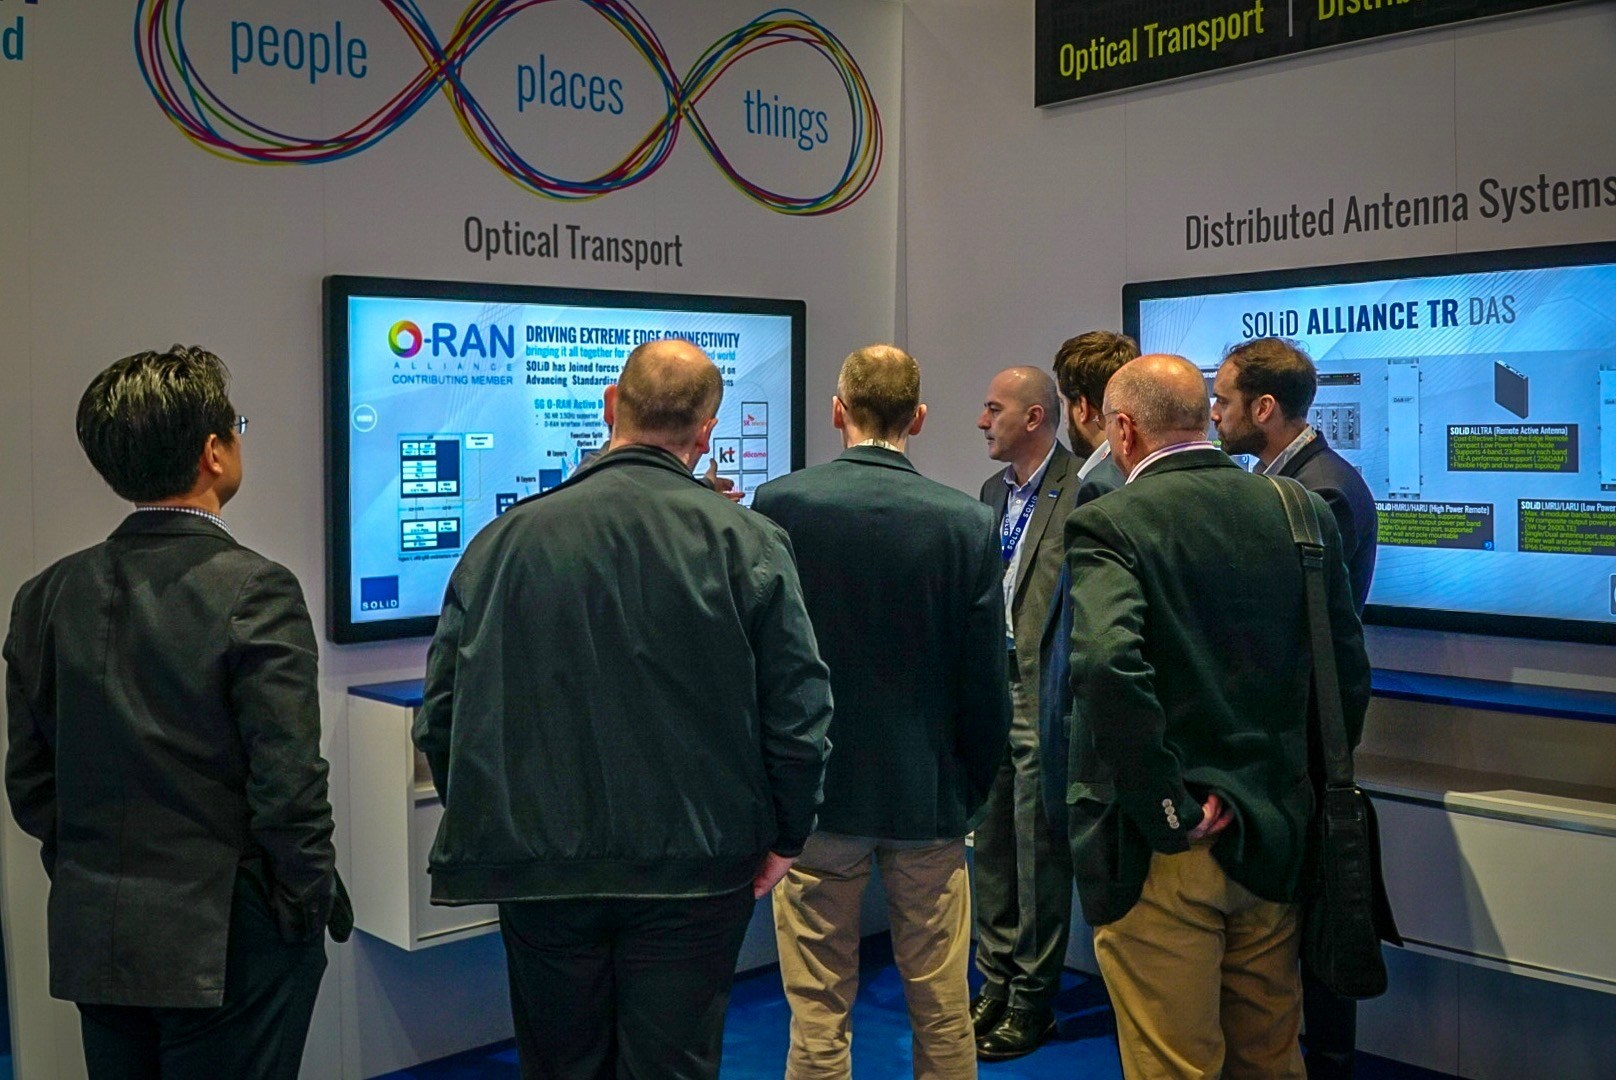 SOLiD to Deliver O-RAN -based Solutions in 2019